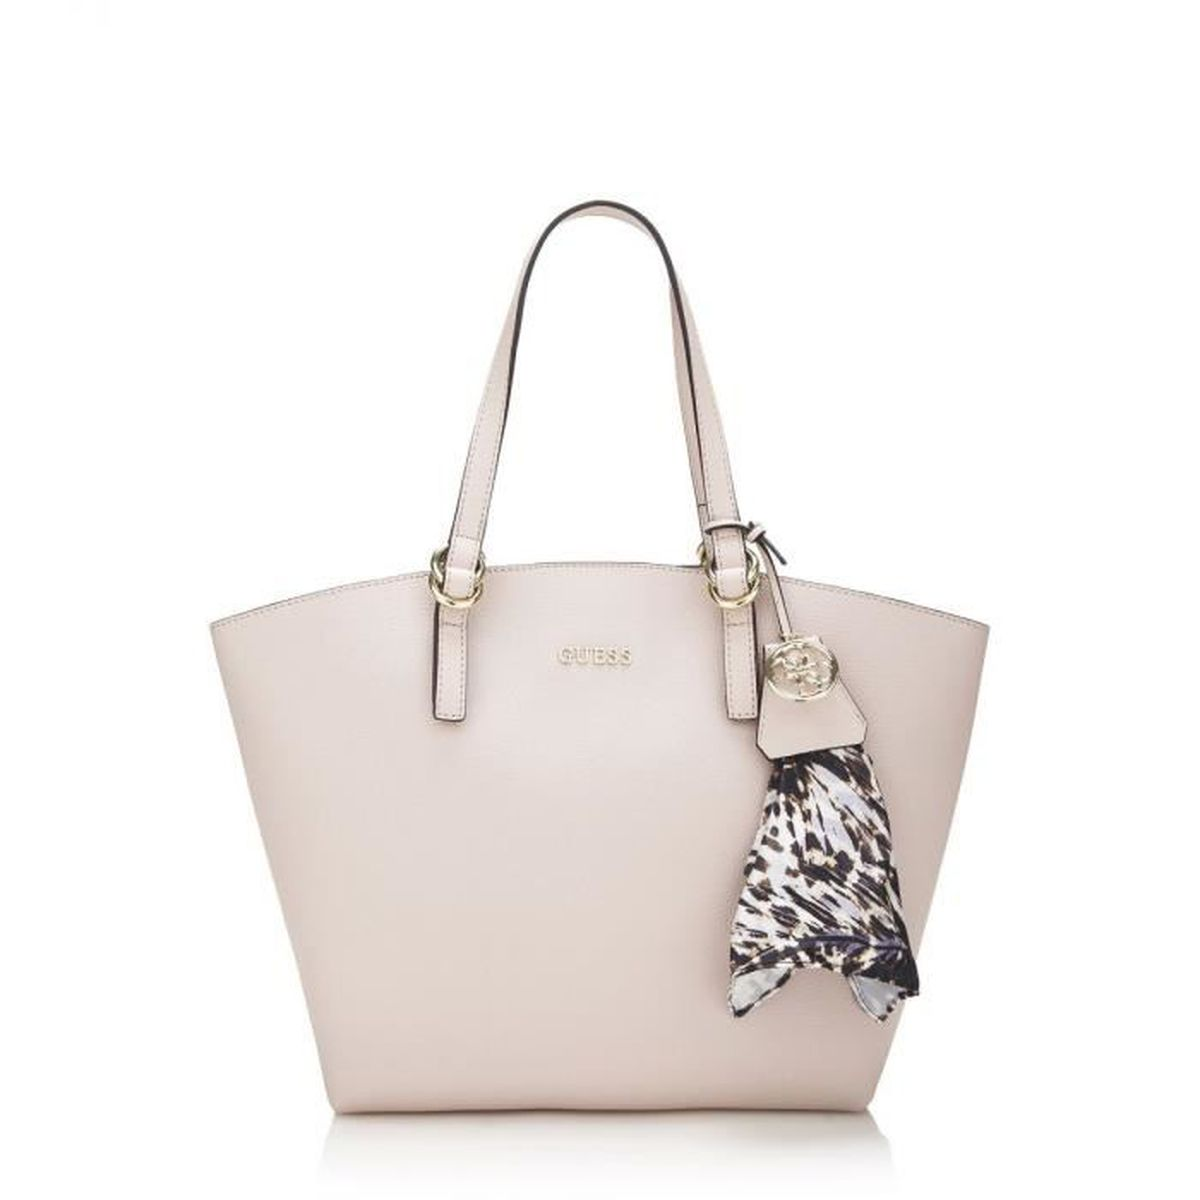 Guess D'épaule Sac Tuliphwtulip7223Ros Achat Taille PZwOuTkXi